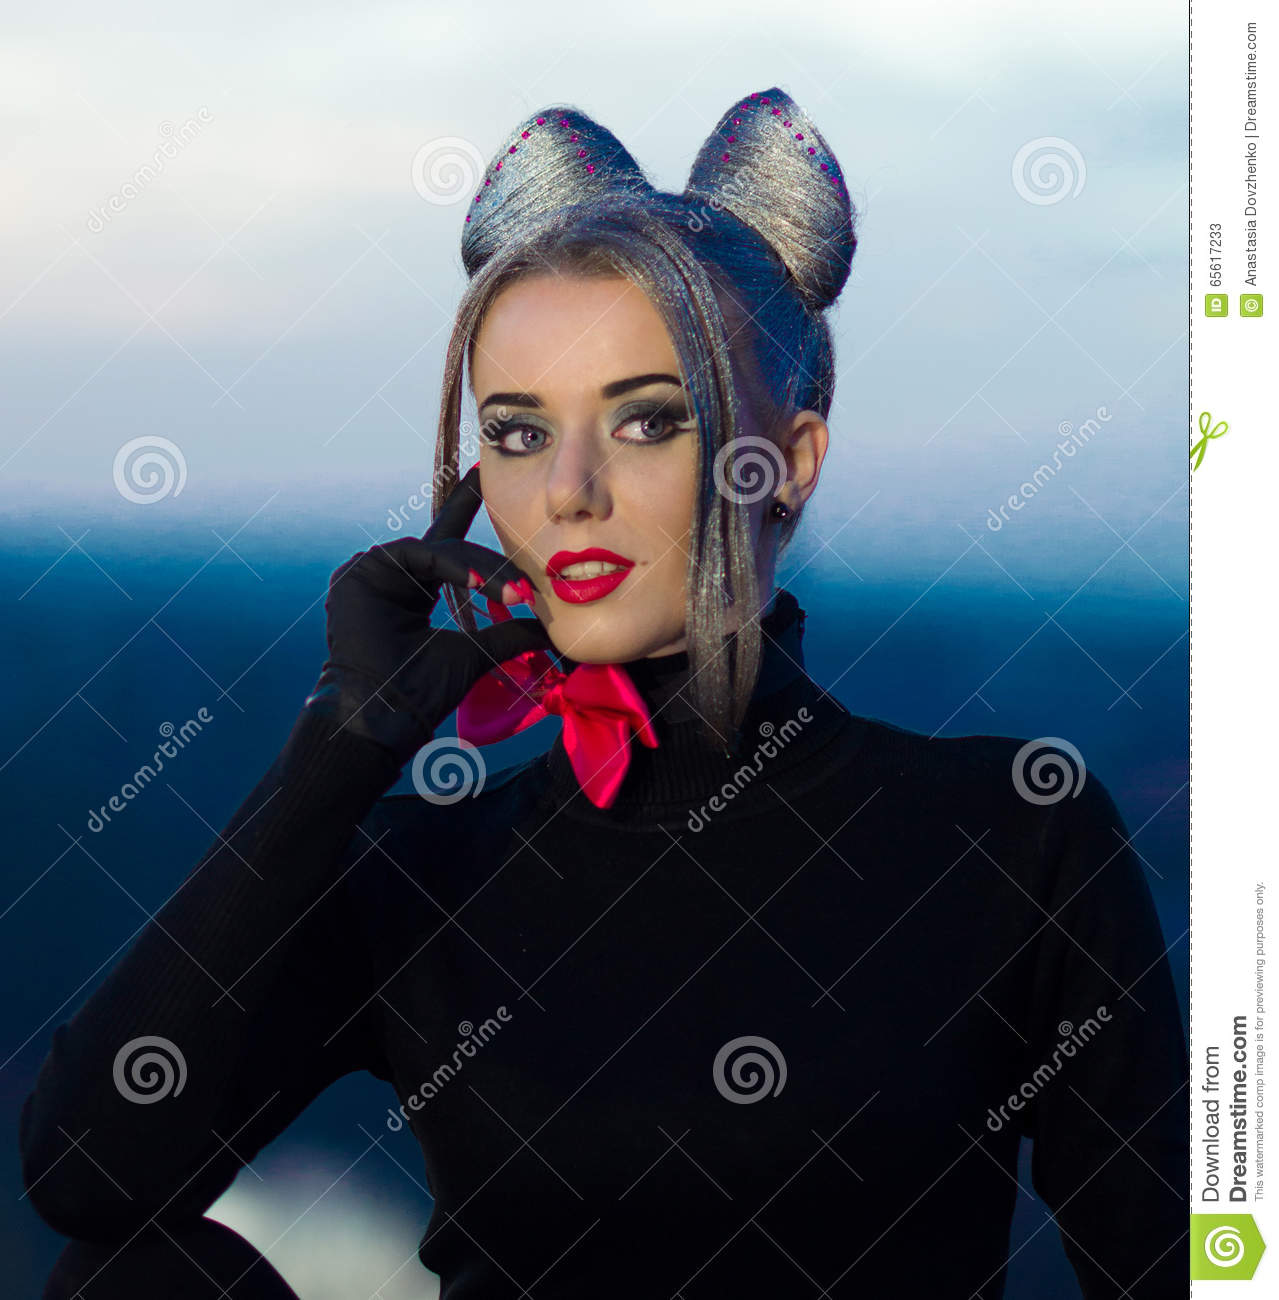 Sexual portrait of seductive,sexual girl.Professional fashionable model on fashion week. Well-dressed, good-looking girl,woman cat